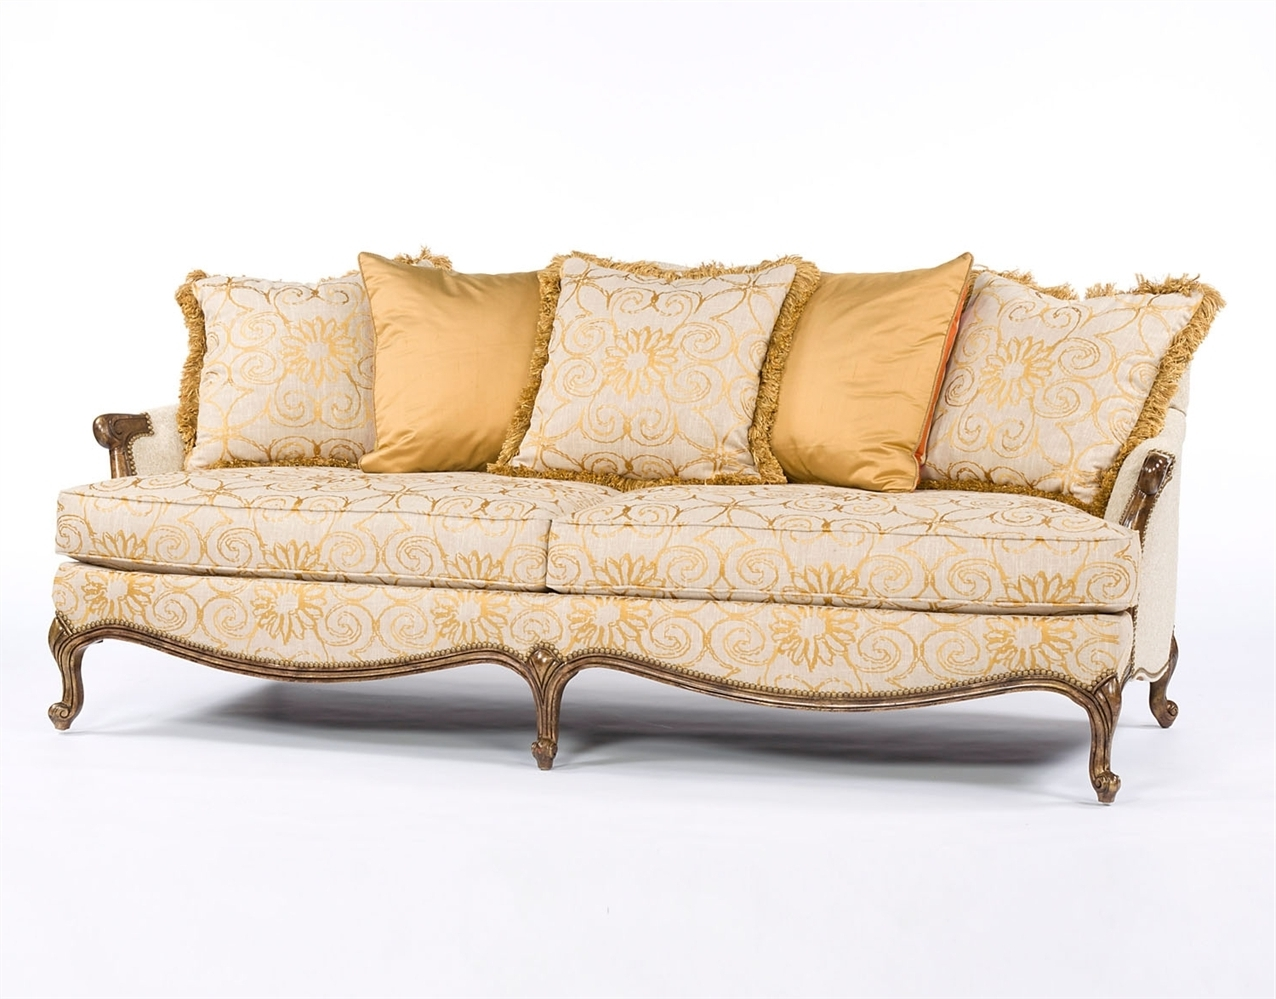 Mod Fabric French Style Sofa With Regard To Widely Used French Style Sofas (View 4 of 15)